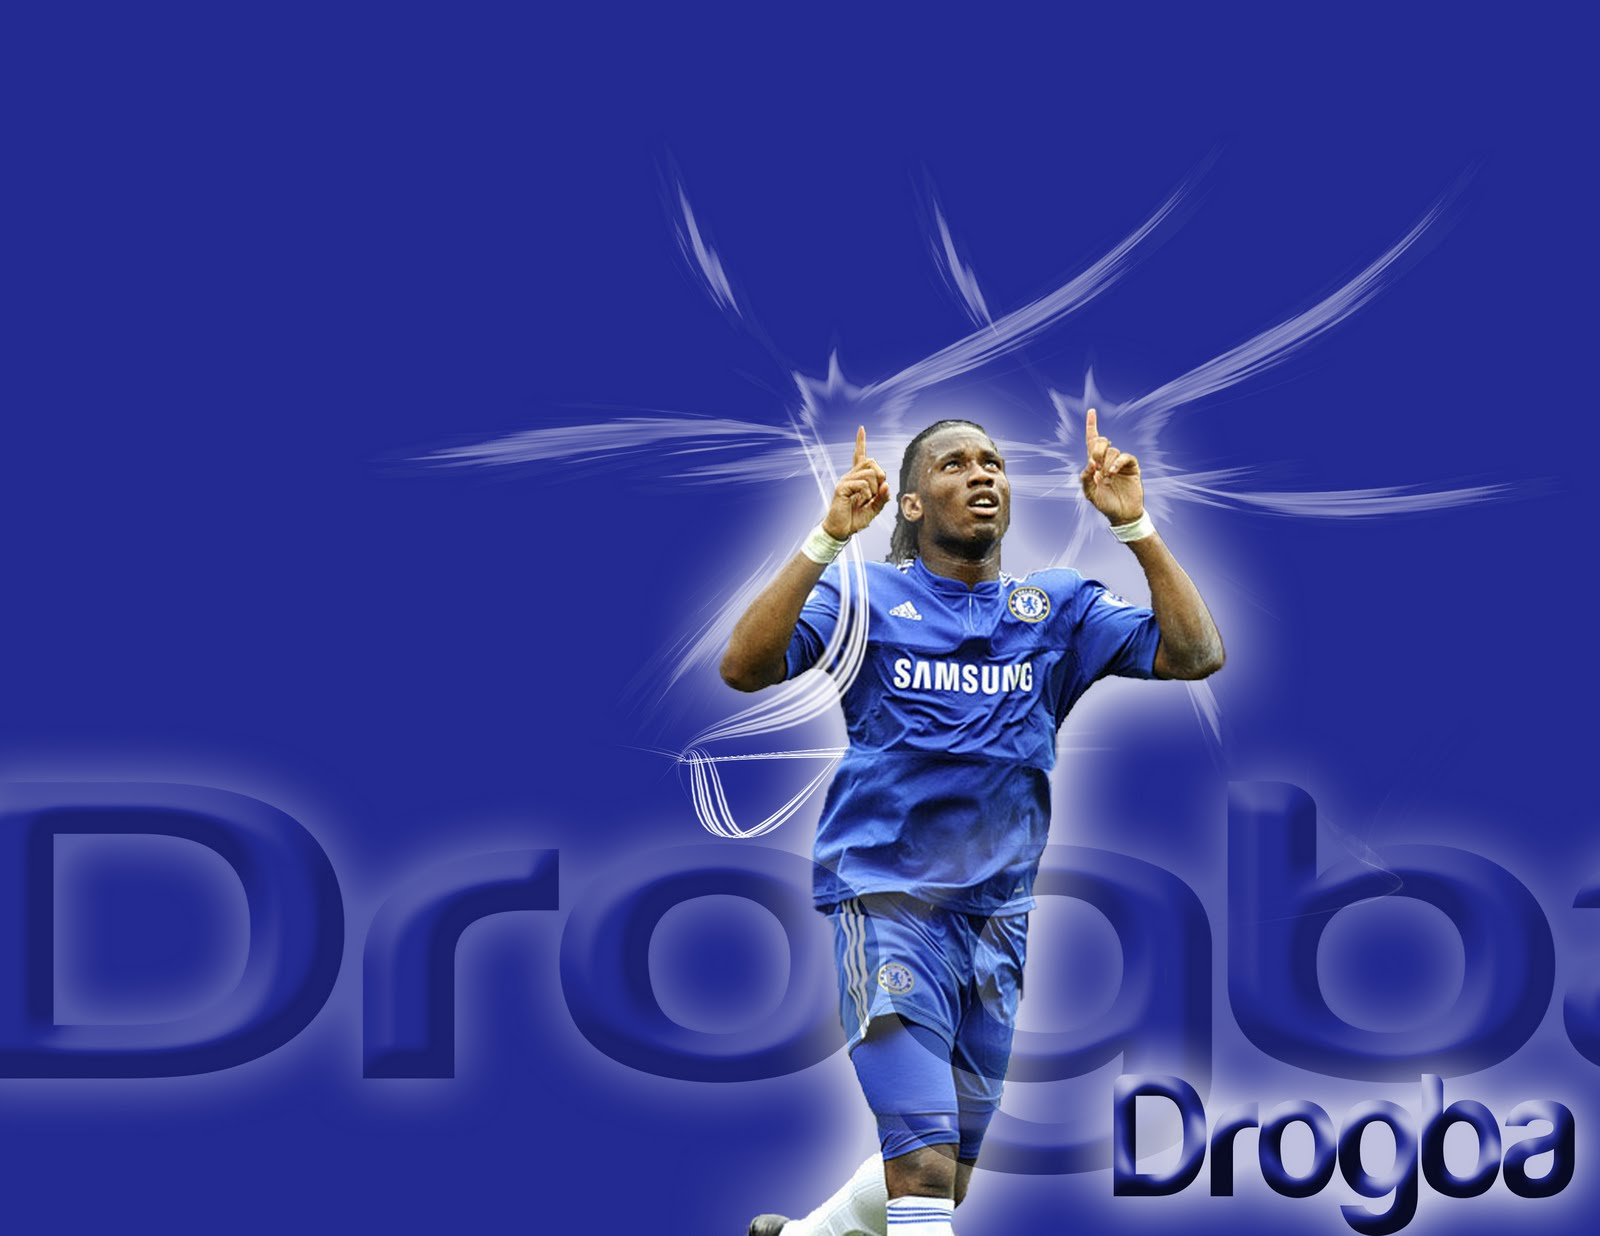 Top Footballer Wallpaper Didier Drogba Chelsea Wallpapers For Desktop picture wallpaper image